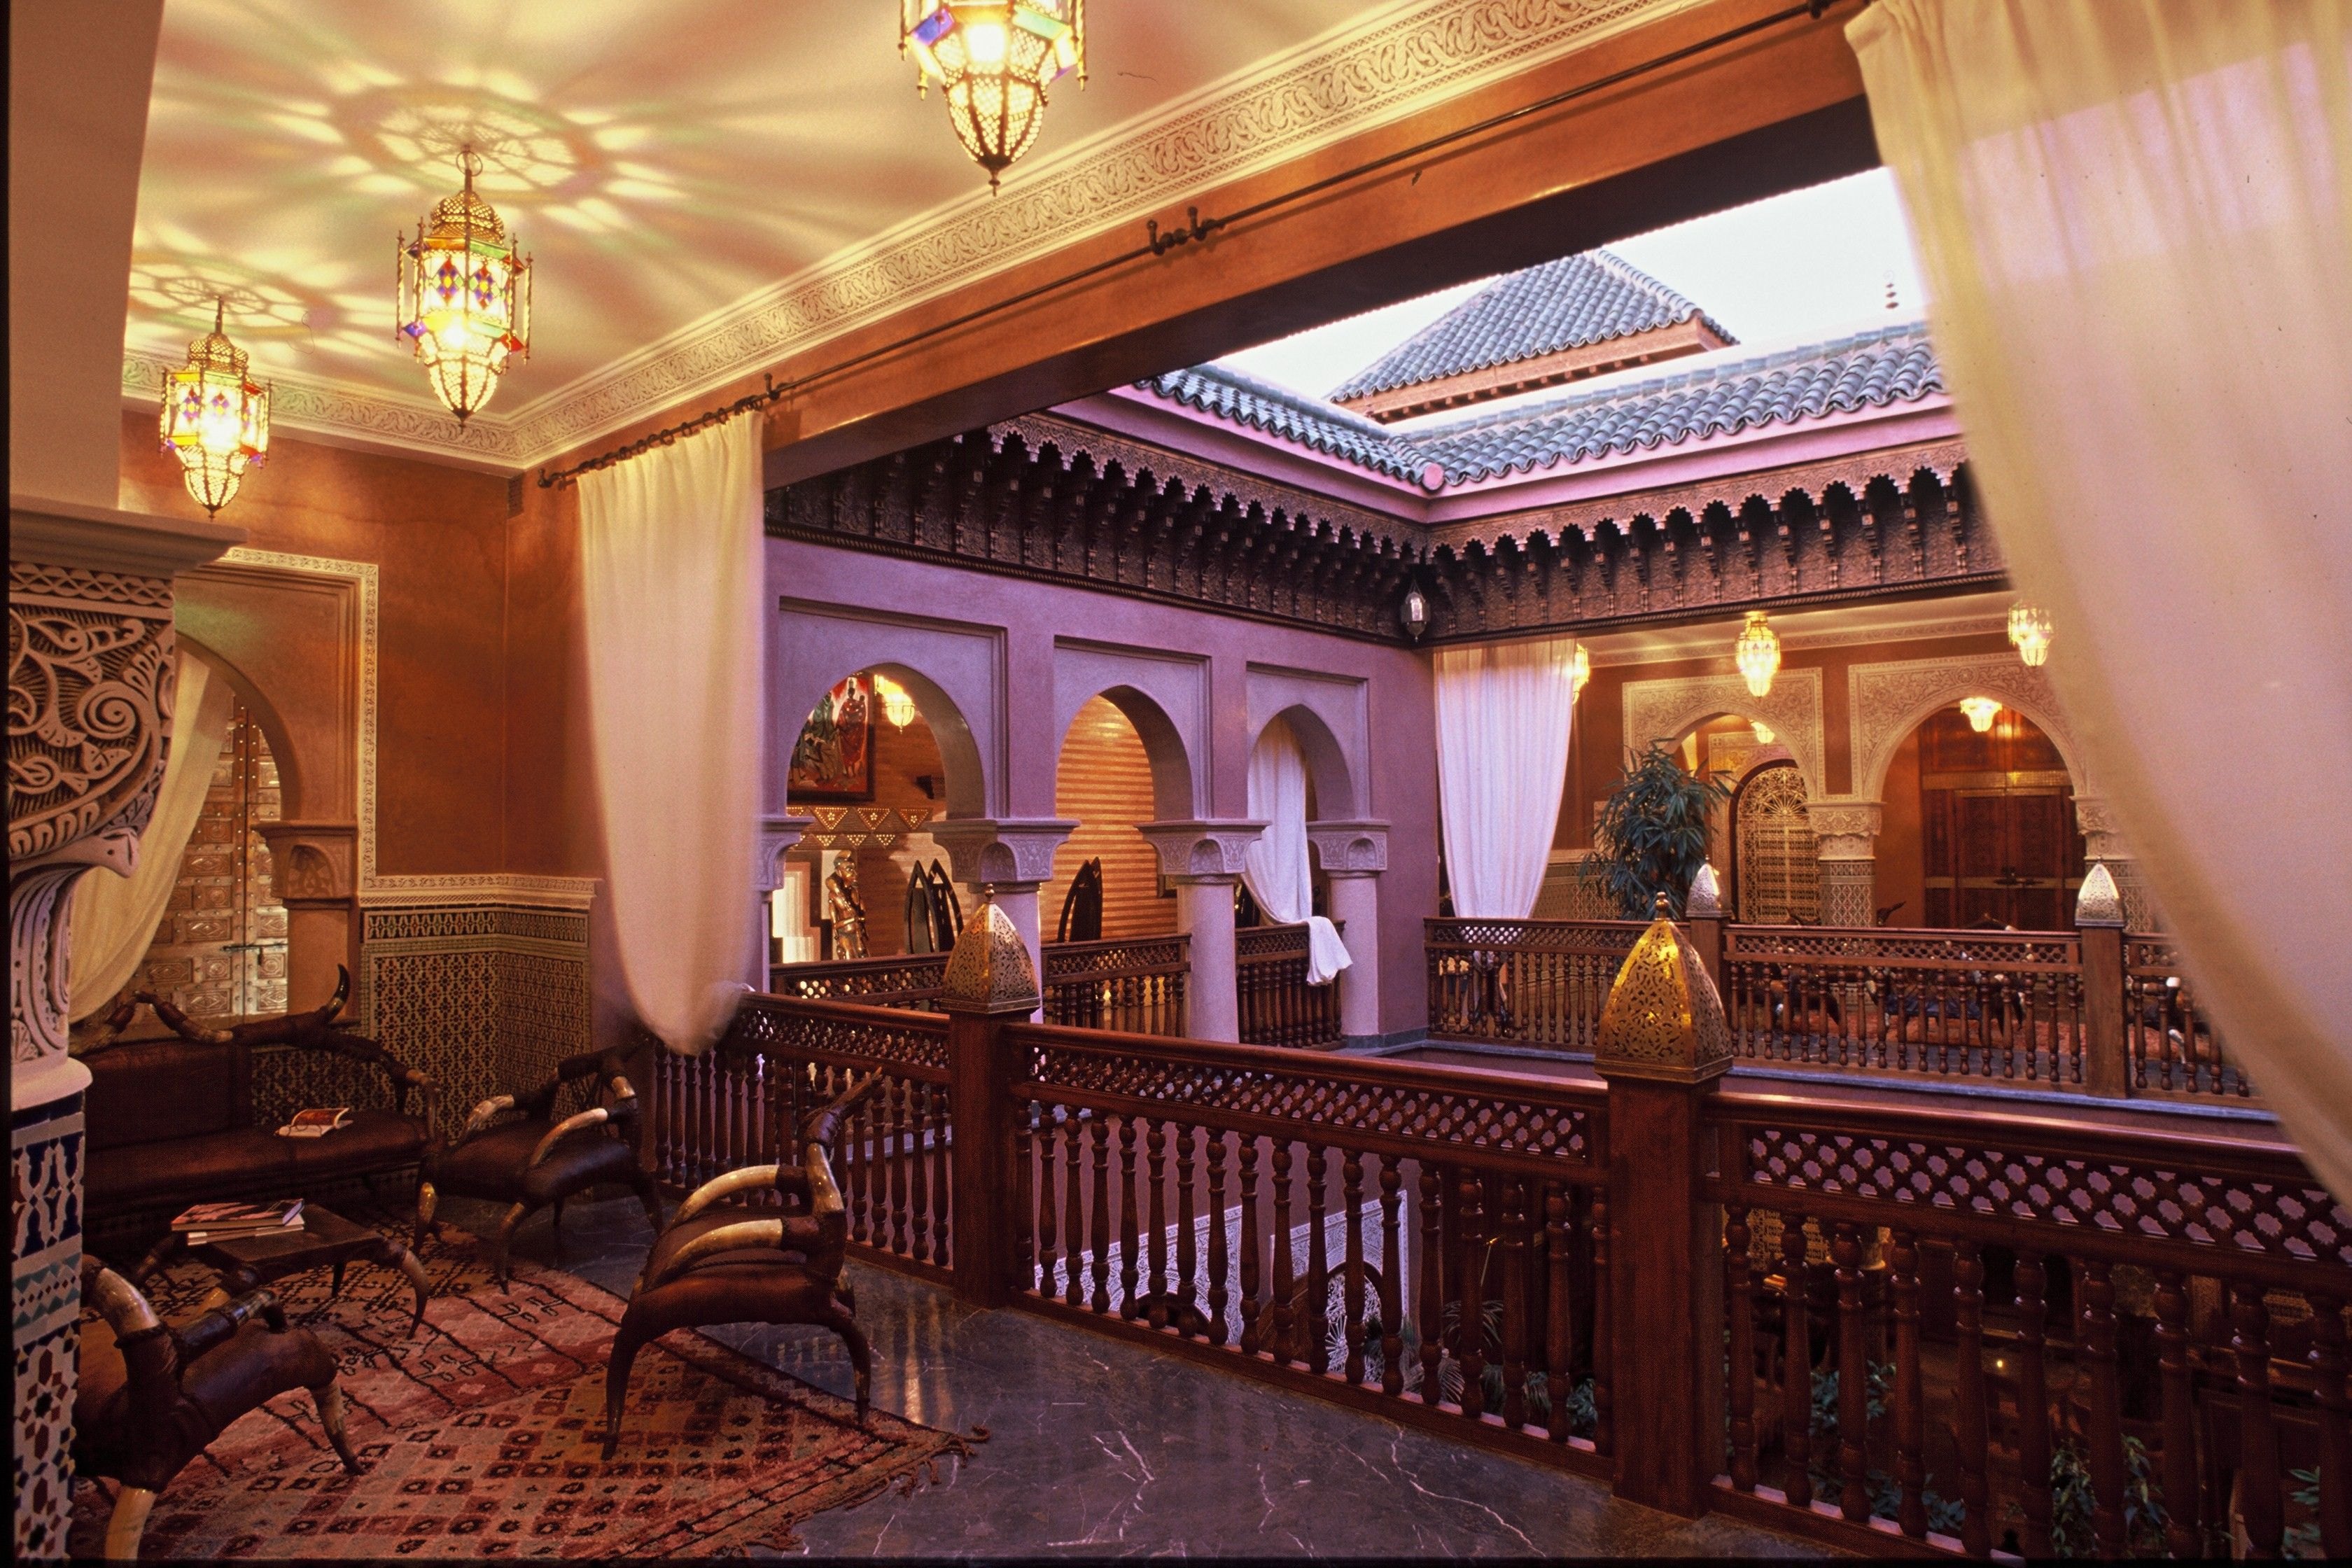 the hotel la sultana has a wonderful mix of traditional